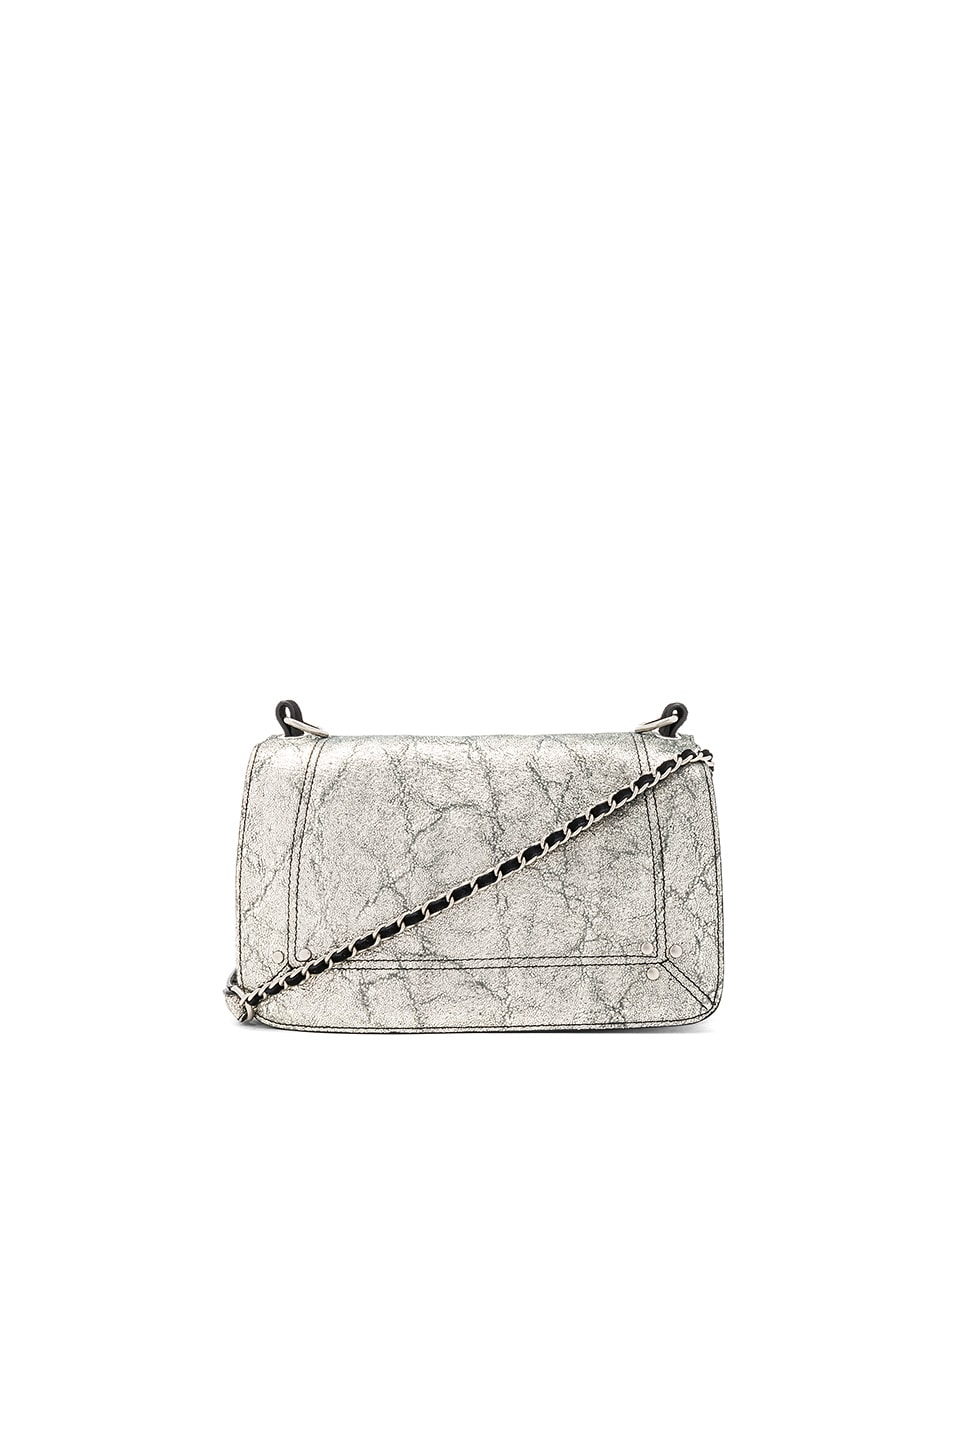 Jerome Dreyfuss Bobi Crossbody in Lamine Silver